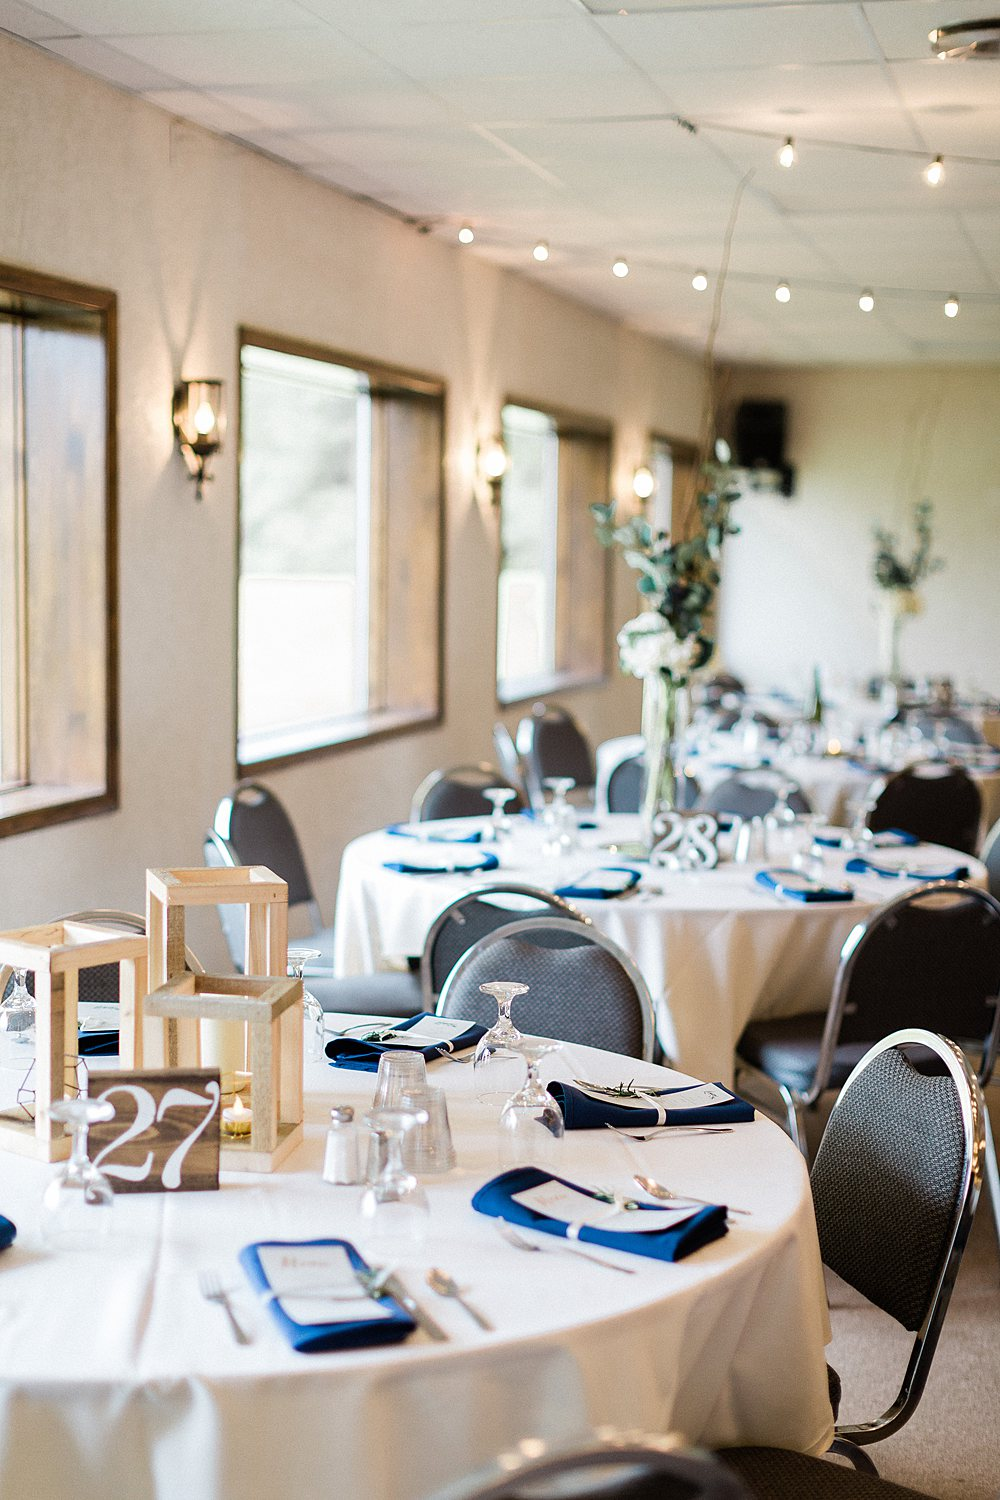 North_Central_Wisconsin_Event_Wedding_Venues_Fall_Weddings_The_Bailiwick_Venue_James-Stokes-Photography050.jpg